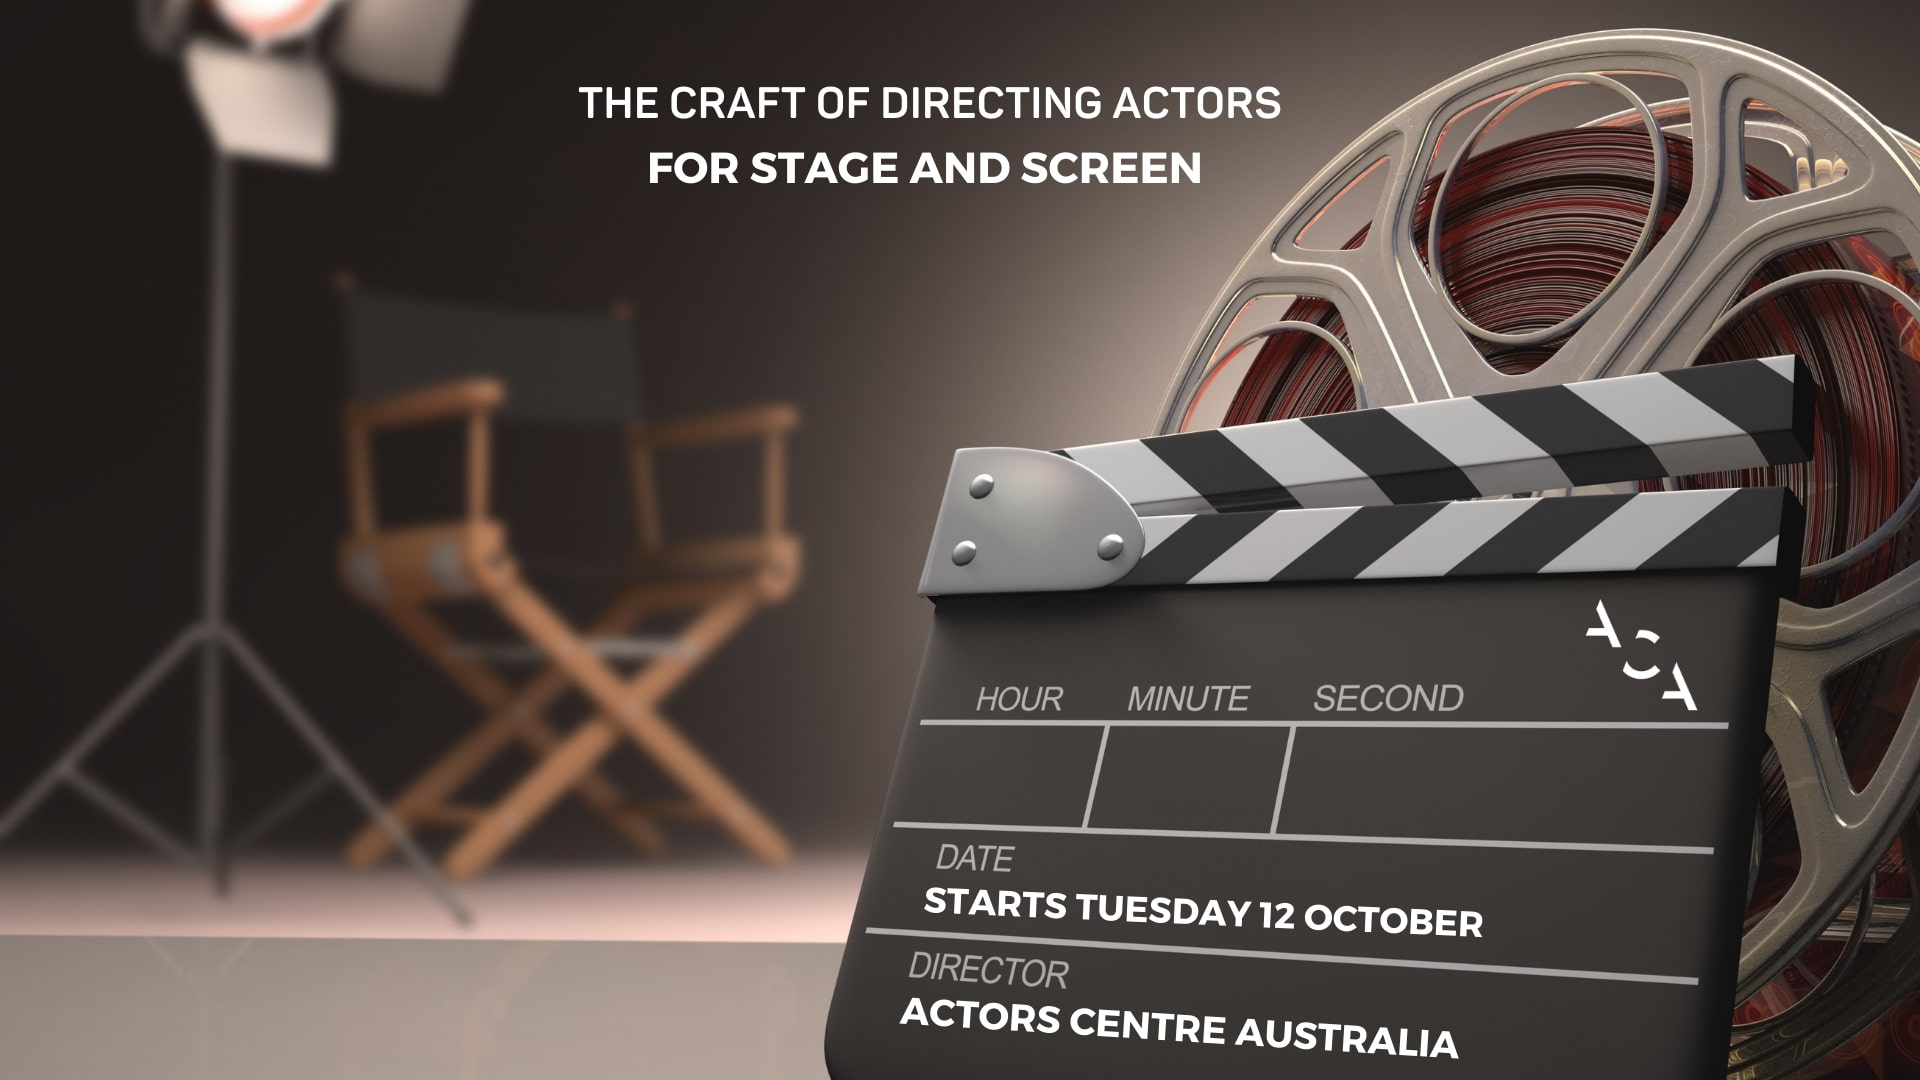 Director Chair Stock Image Online Course